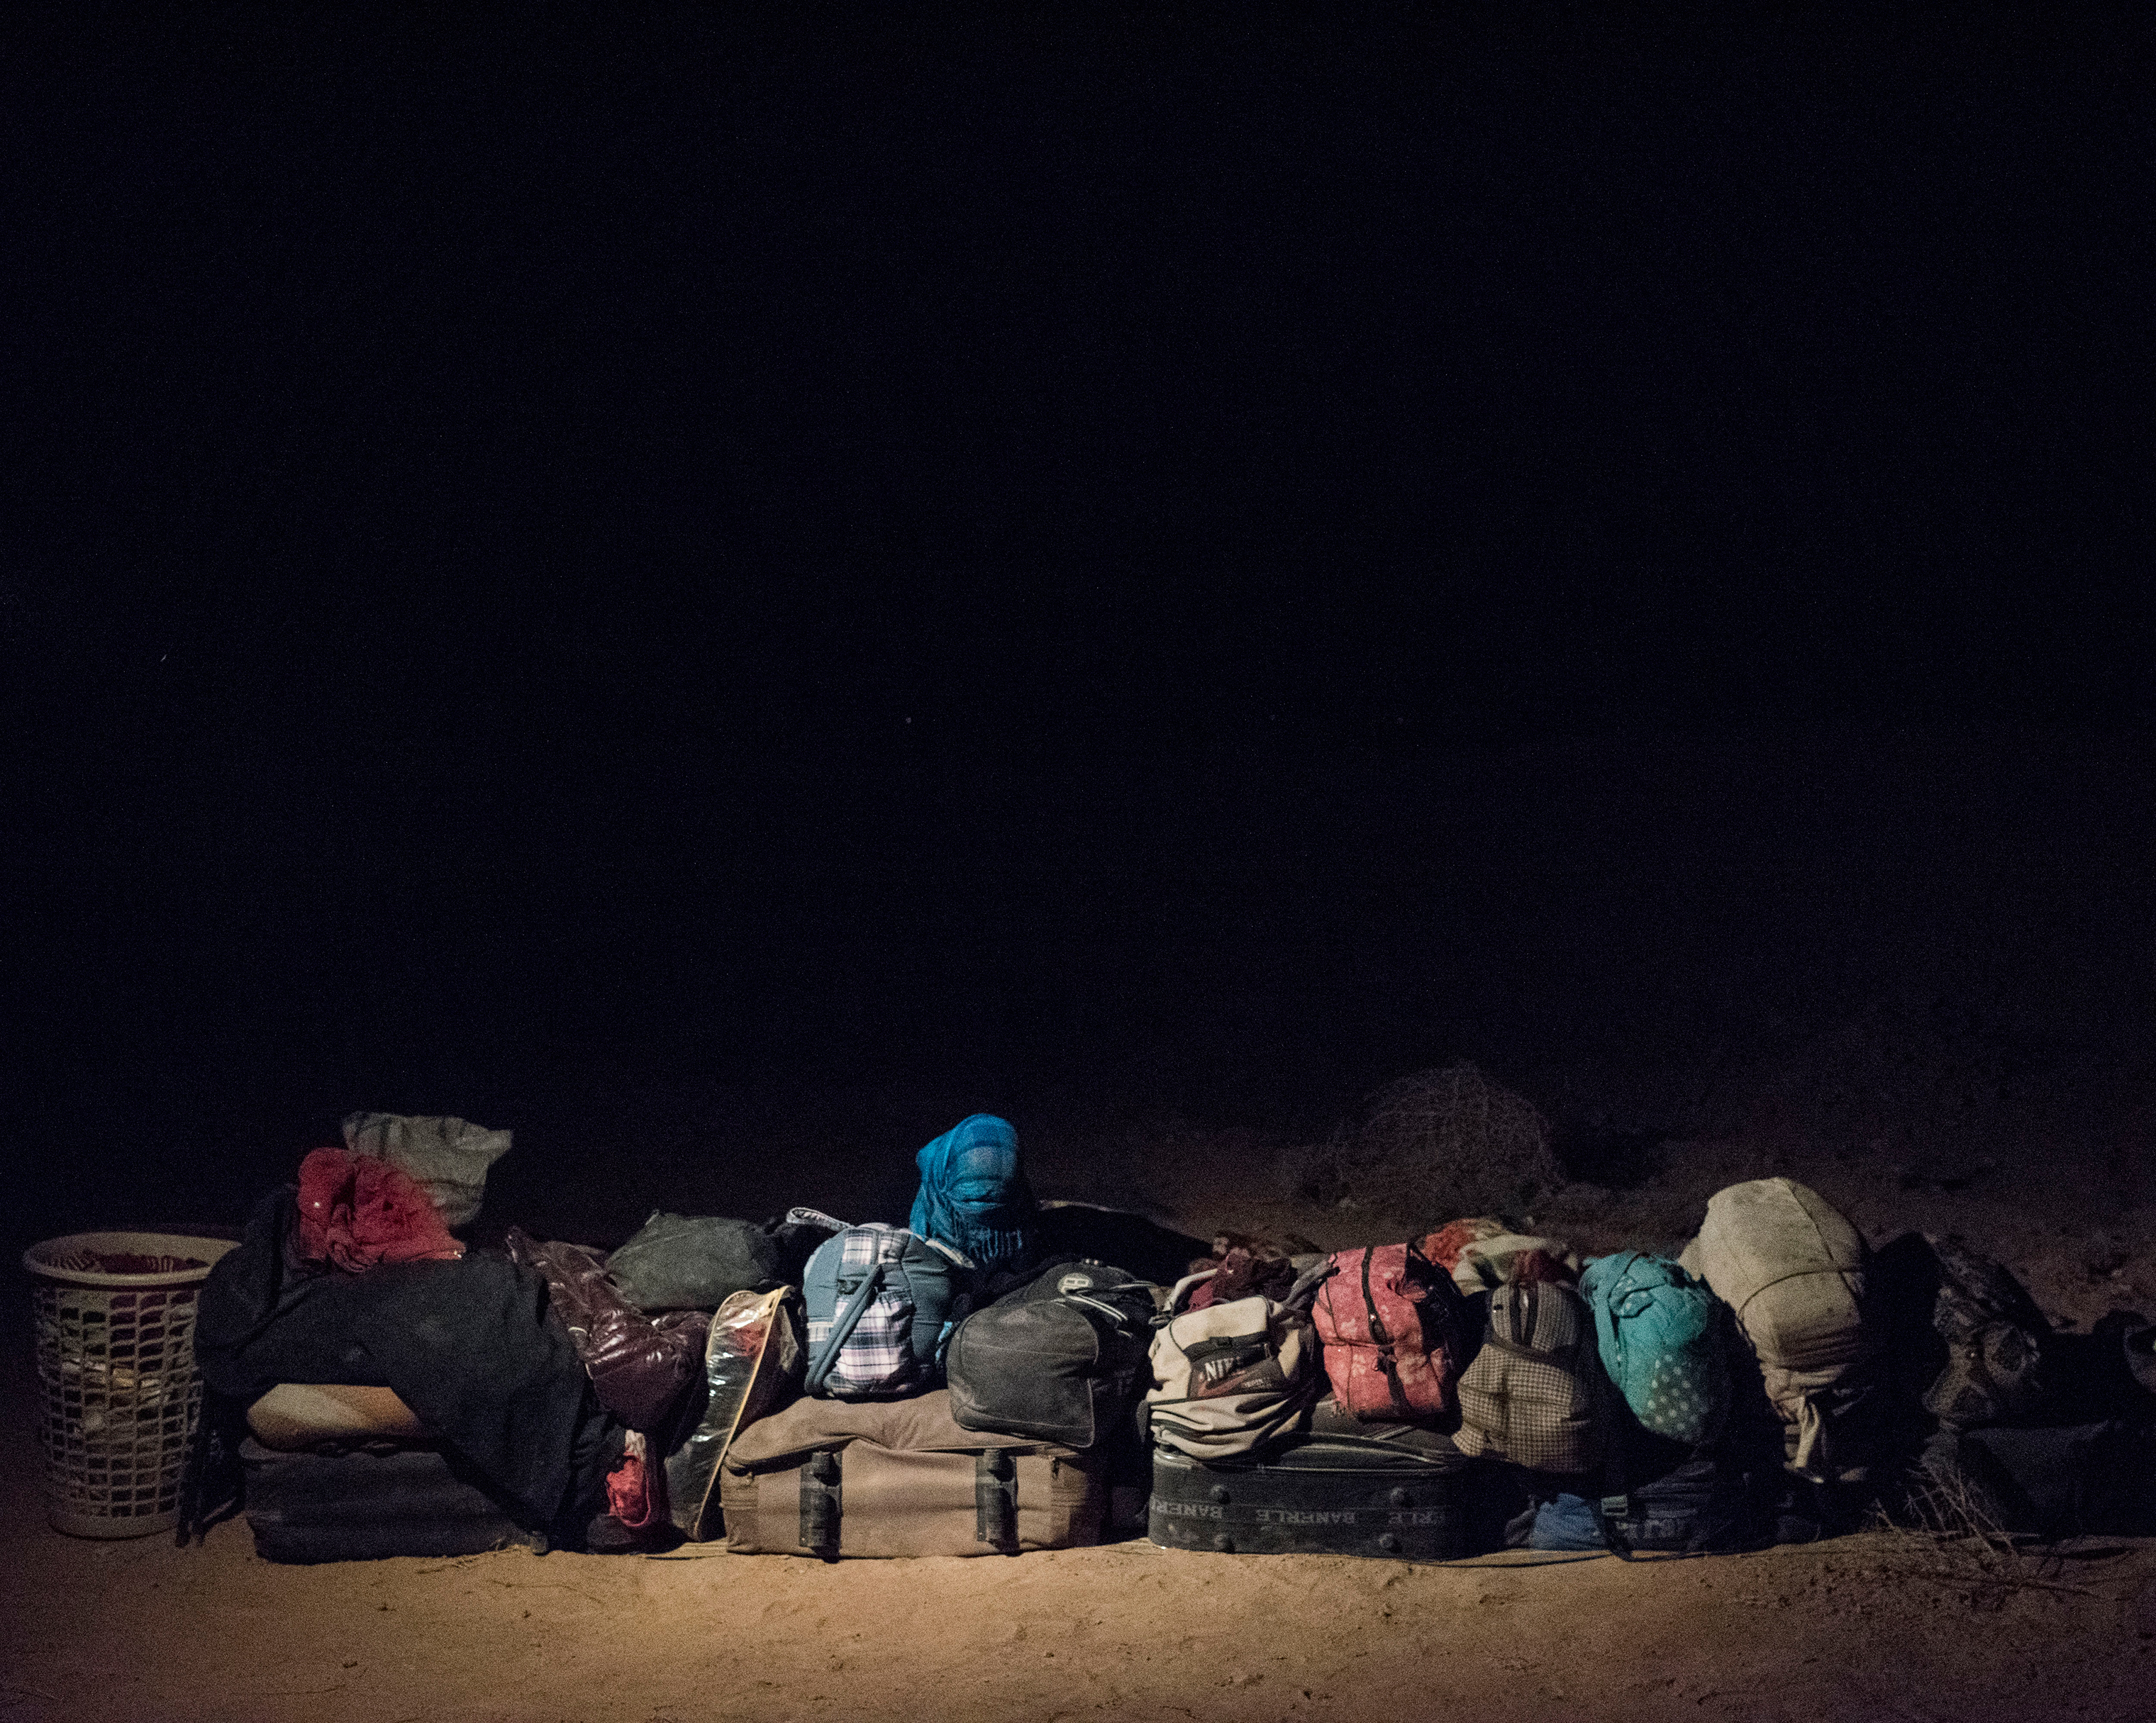 The belongings of refugees sleeping in the Syrian desert, on the outskirts of Deir ez-Zor.